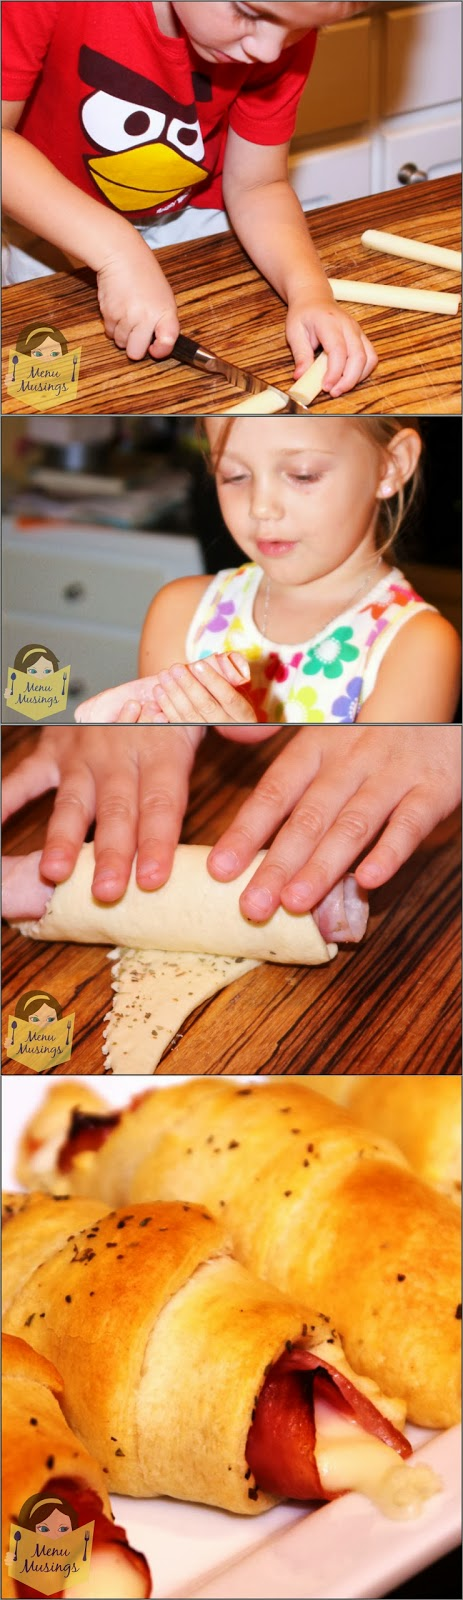 http://menumusings.blogspot.com/2012/09/ham-and-cheese-crescents-for-kids-by.html